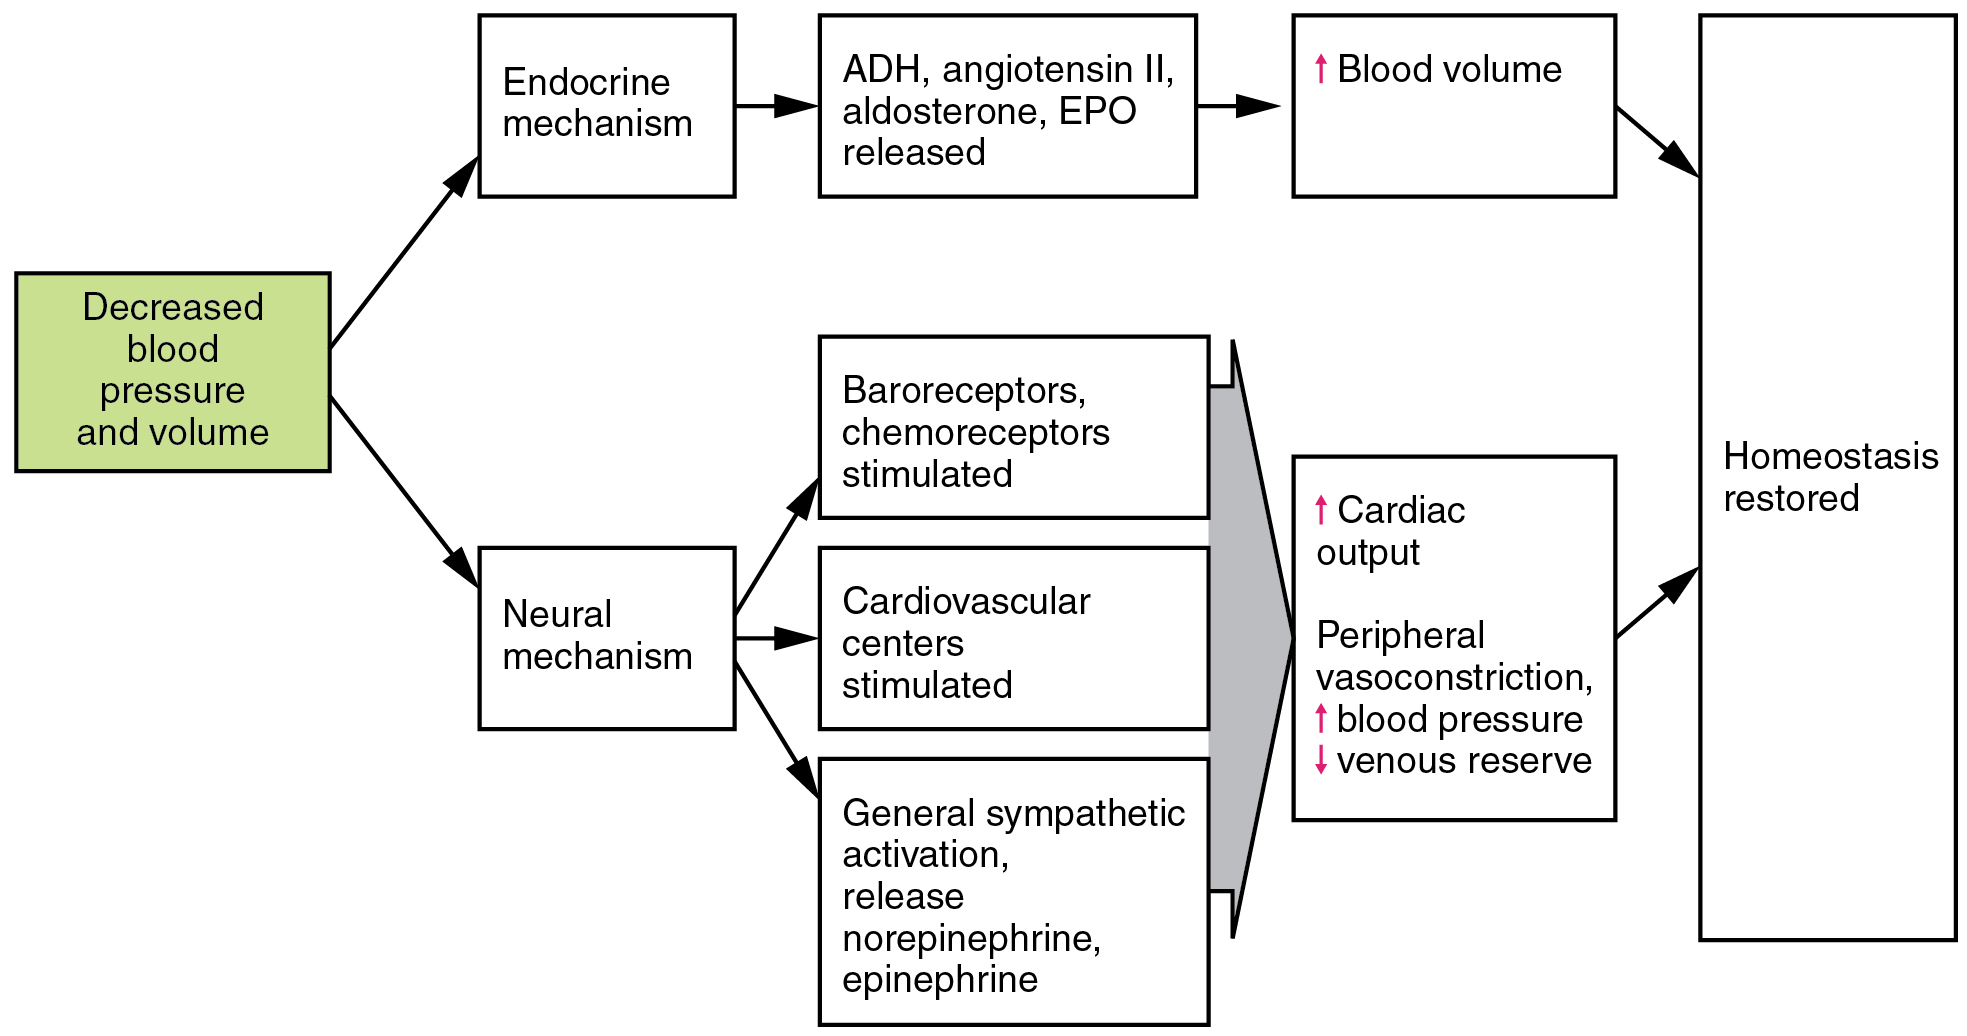 204 homeostatic regulation of the vascular system anatomy and this flowchart shows the action of decreased blood pressure and volume in the neural and endocrine nvjuhfo Choice Image